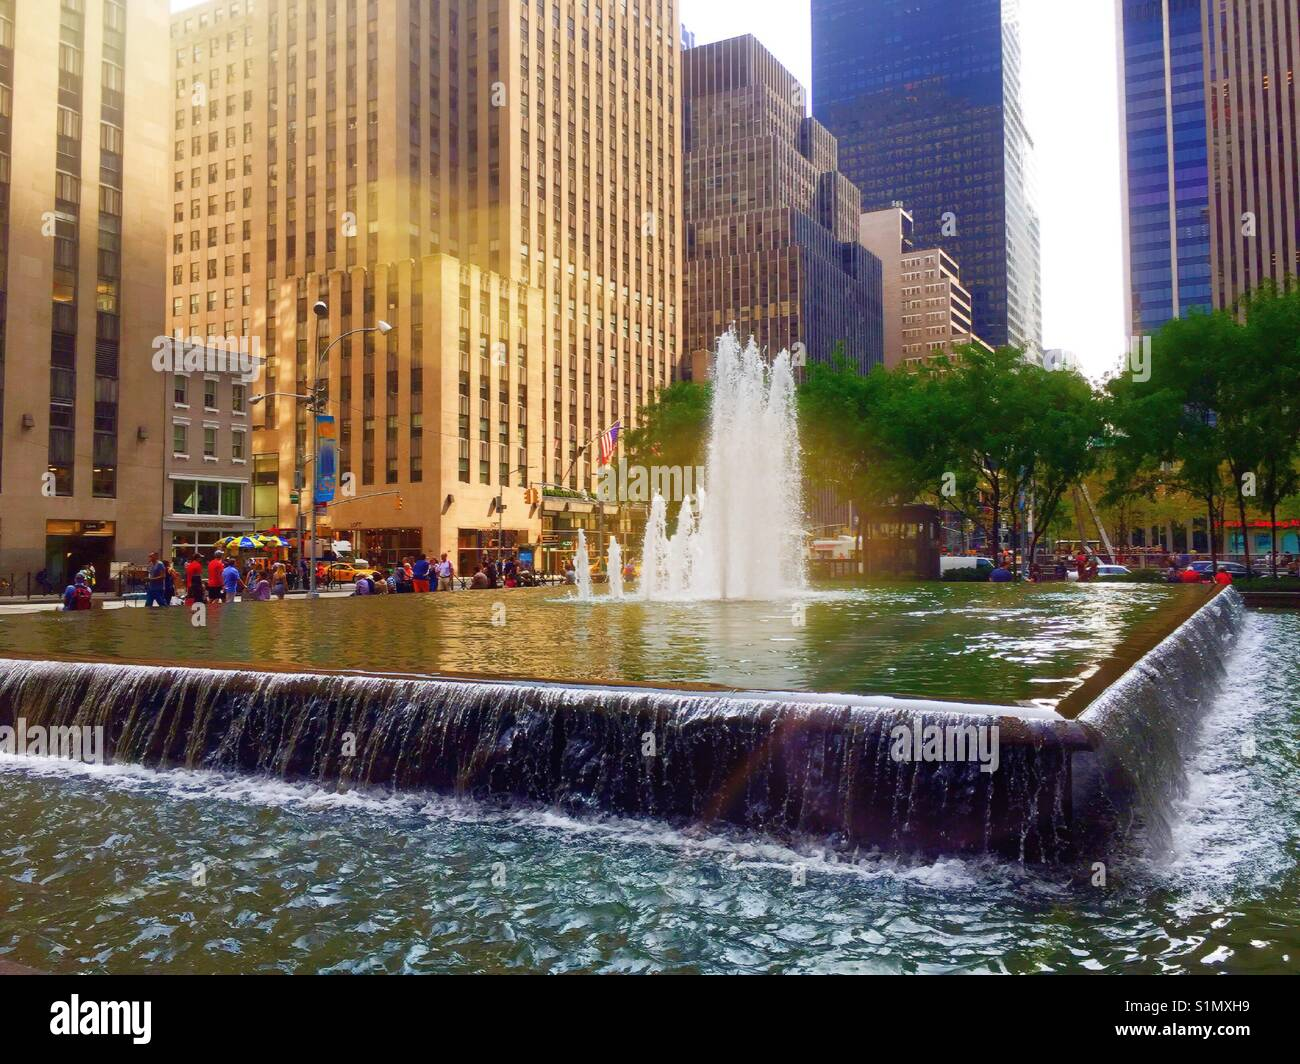 Reflecting pool and fountain, Rockefeller Center, Avenue of the Americas, NYC, USA Stock Photo